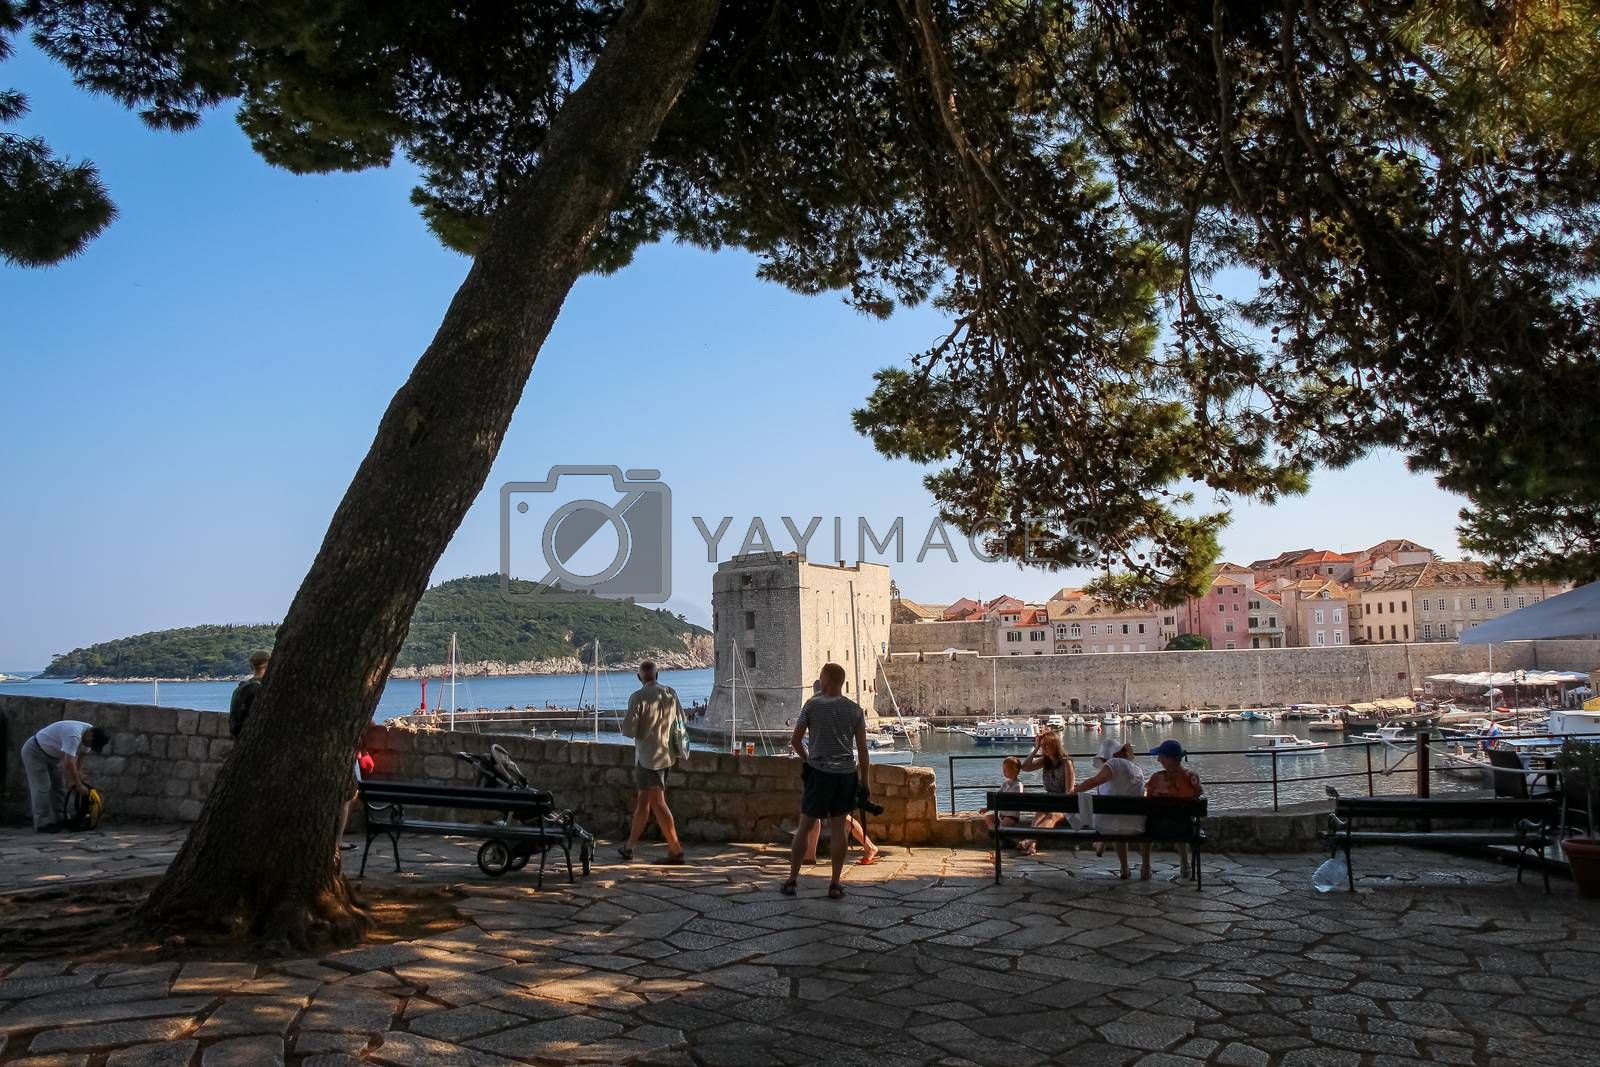 Dubrovnik, Croatia - July 15th 2018: Tourists sitting in the shade viewing the harbour and old town in Dubrovnik, a UNESCO Heritage Site, Croatia